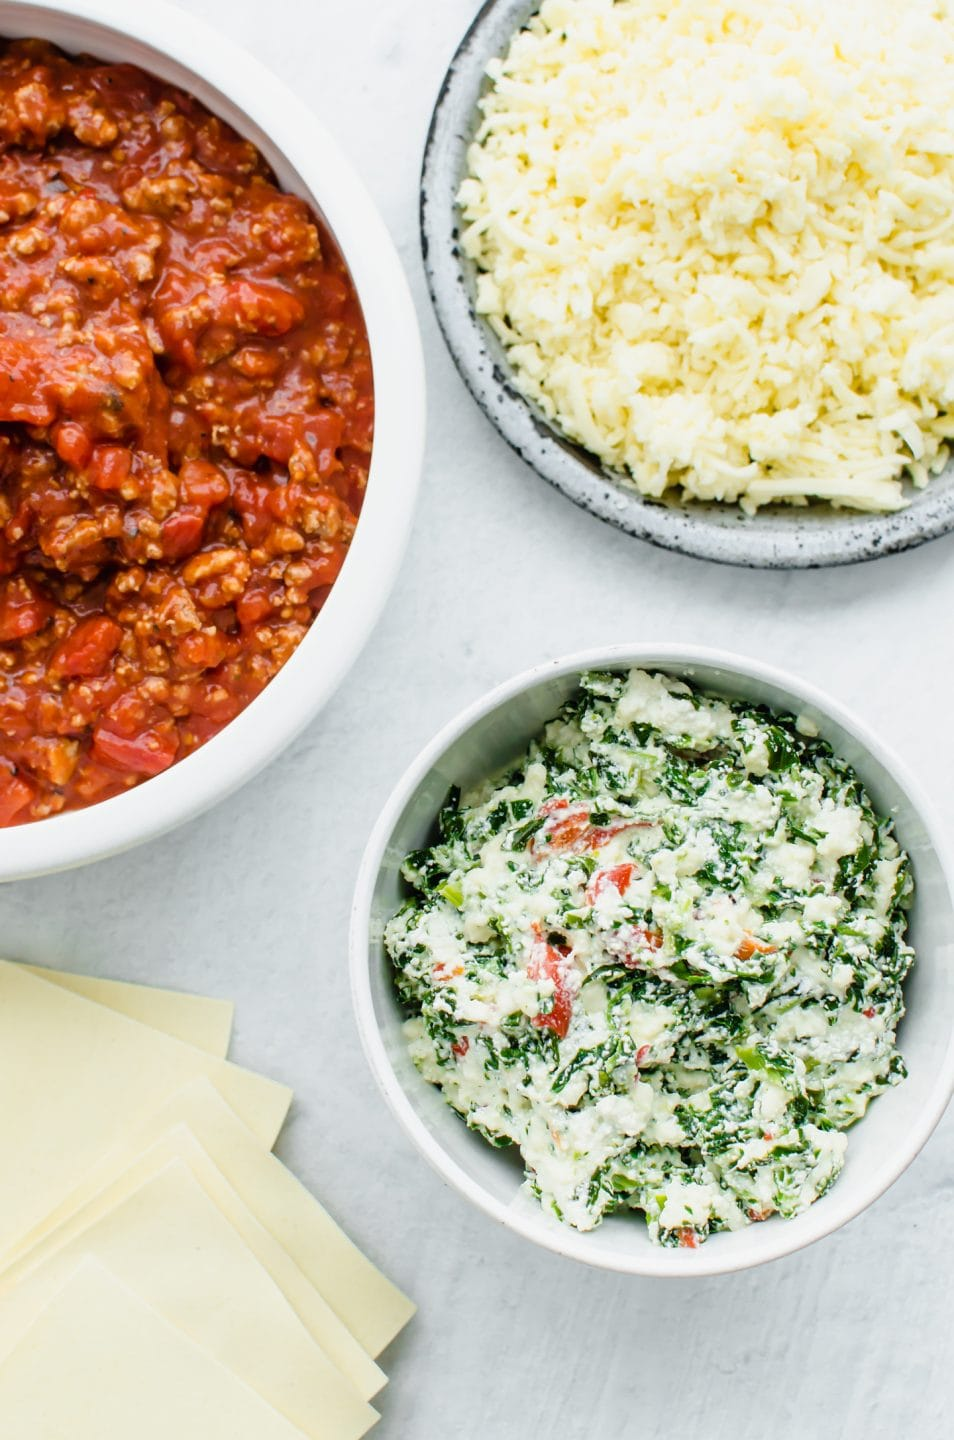 Prep bowls with ingredients for making Turkey Florentine Lasagna on a white stone background.